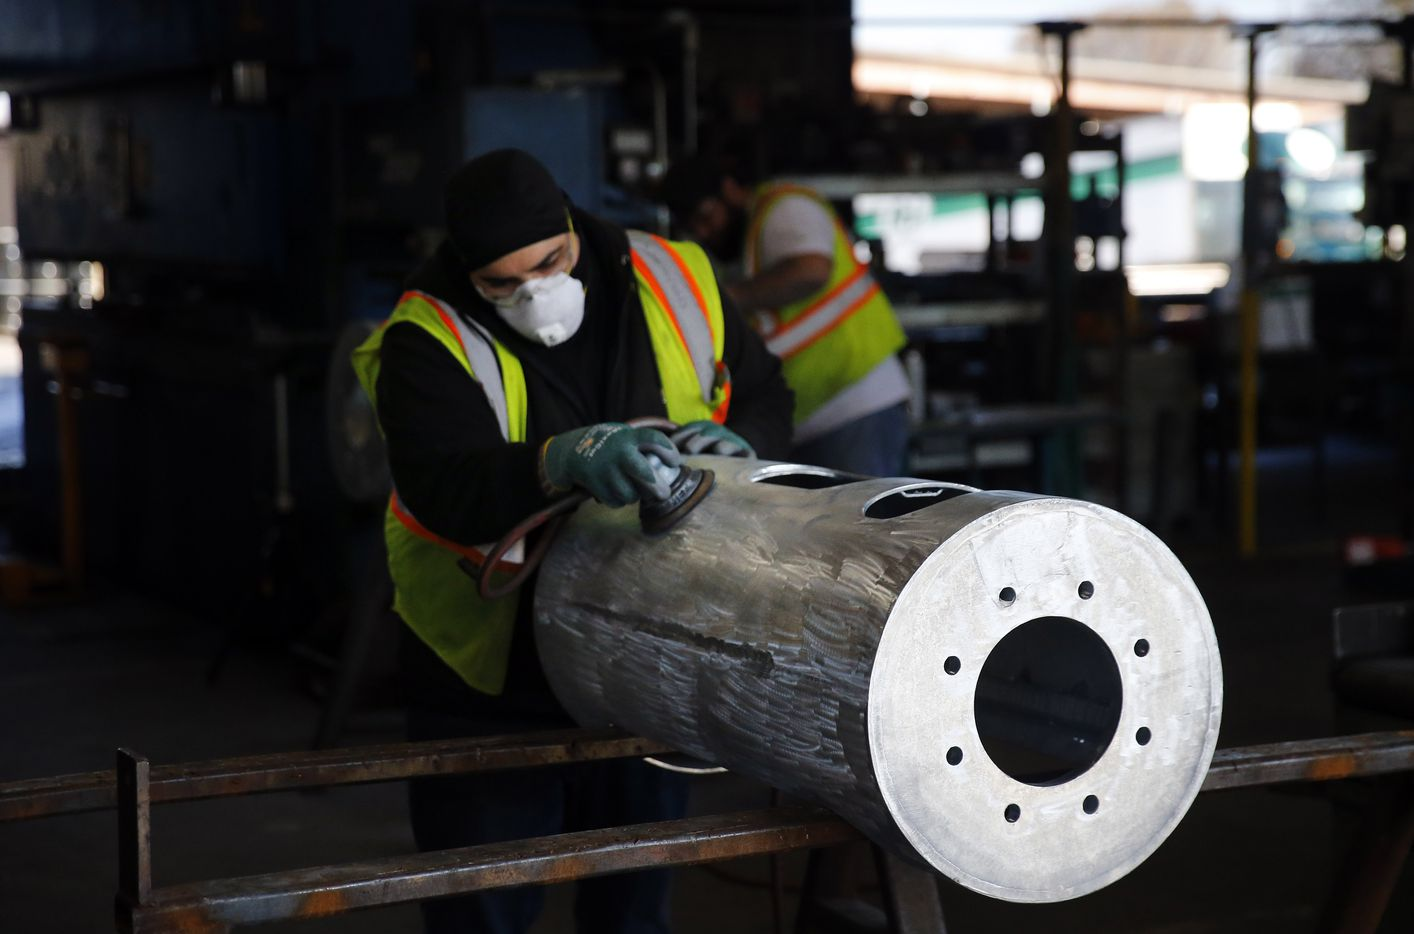 A worker sands a galvanized steel housing at wireless infrastructure manufacturer CommScope in Euless, Texas, Monday, February 4, 2019. The local facility is involved in 5G deployment.